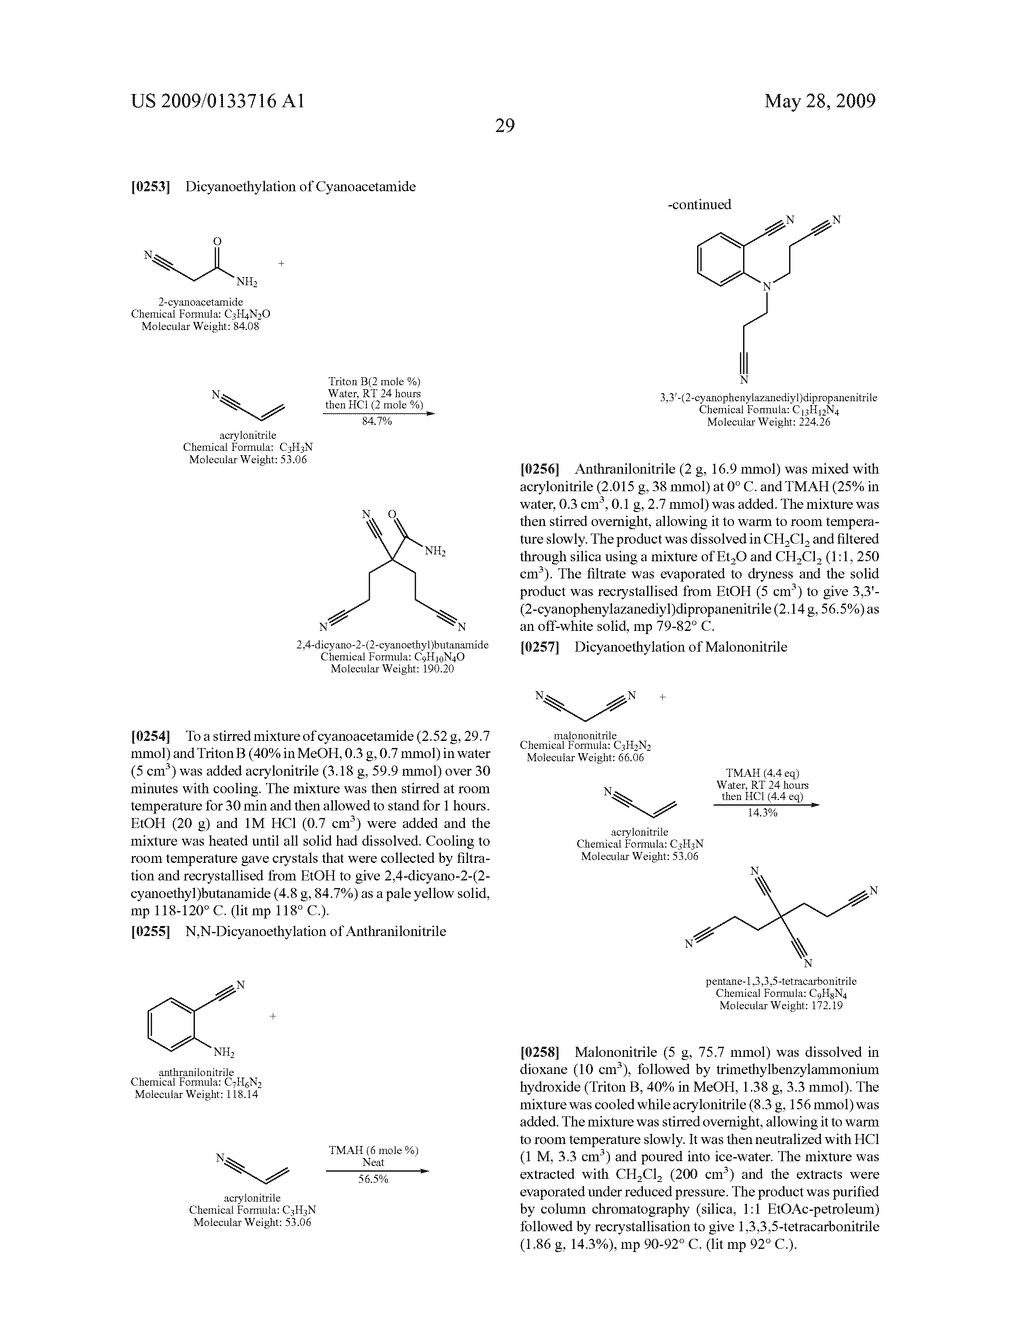 METHODS OF POST CHEMICAL MECHANICAL POLISHING AND WAFER CLEANING USING AMIDOXIME COMPOSITIONS - diagram, schematic, and image 46